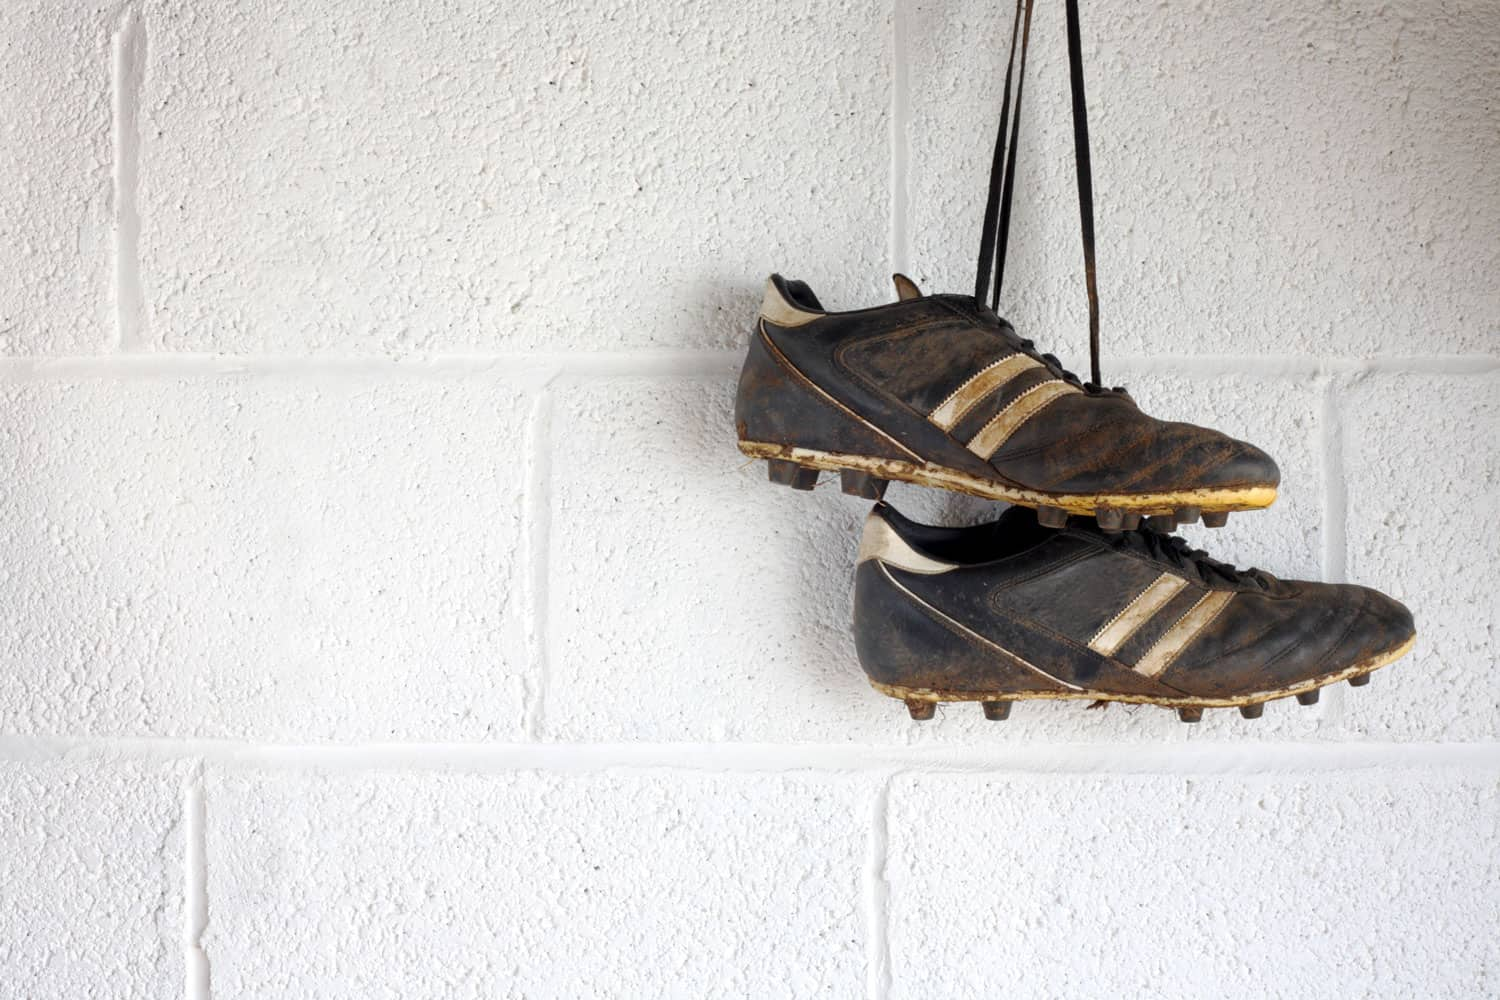 Dirty soccer cleats hanging on a concrete wall